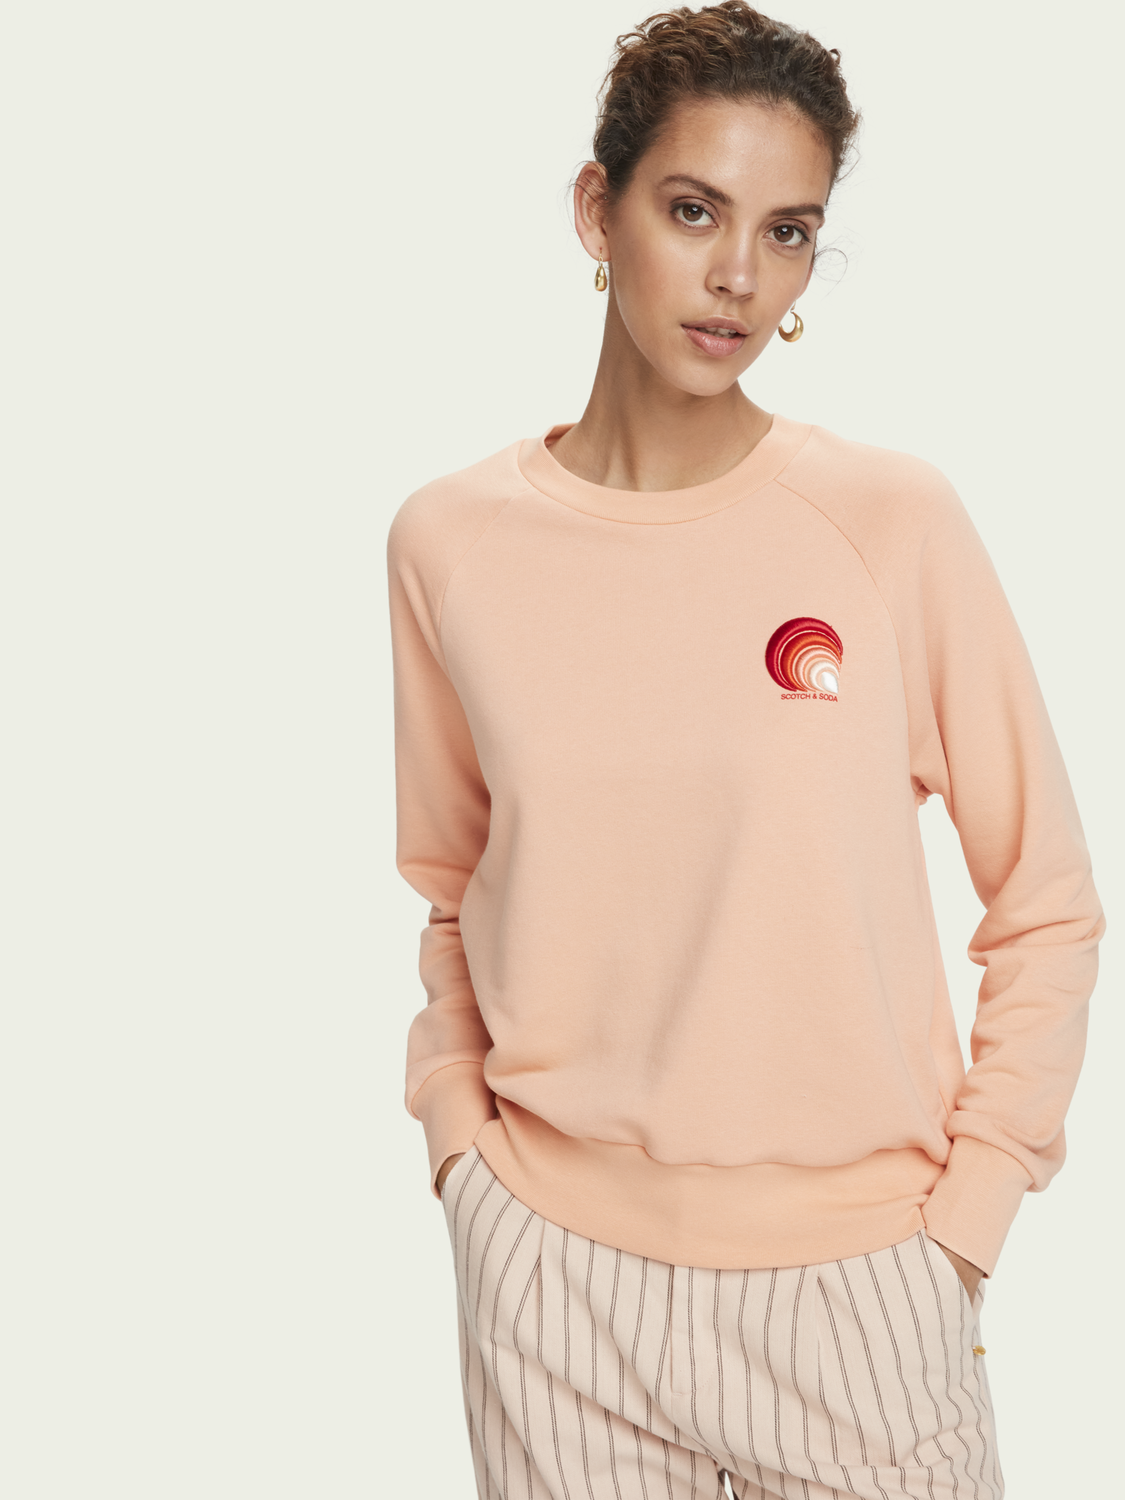 Dames Sweater met textuur, lange mouwen en artwork